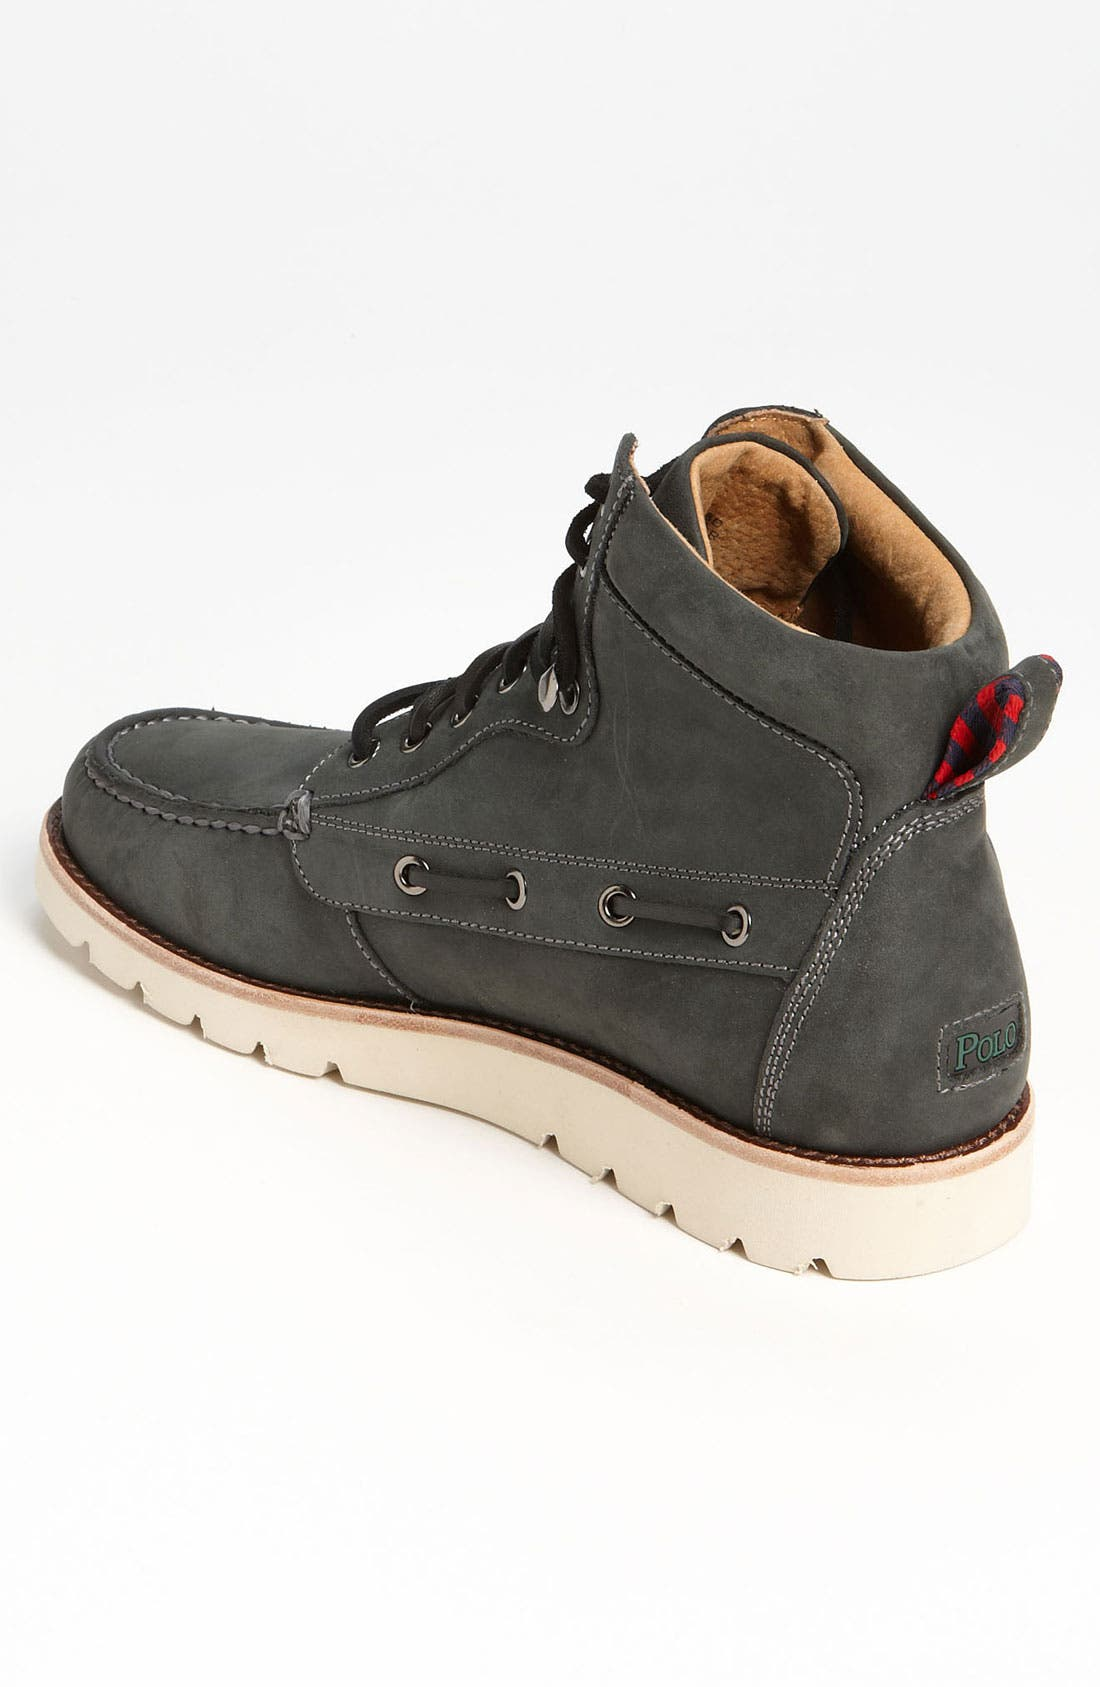 Alternate Image 2  - Polo Ralph Lauren 'Salisbury' Moc Toe Boot